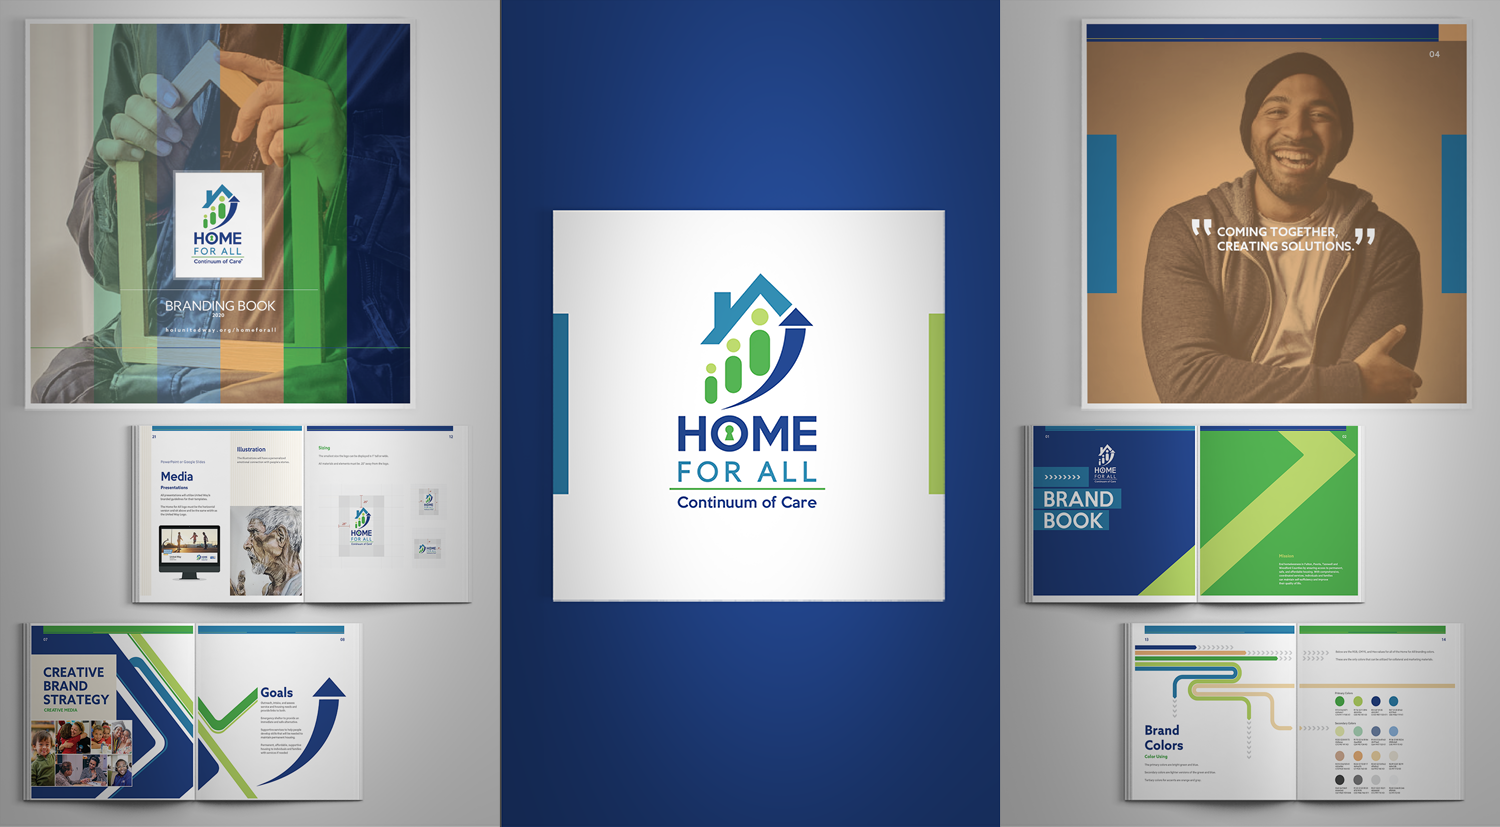 Home for All Continuum of Care